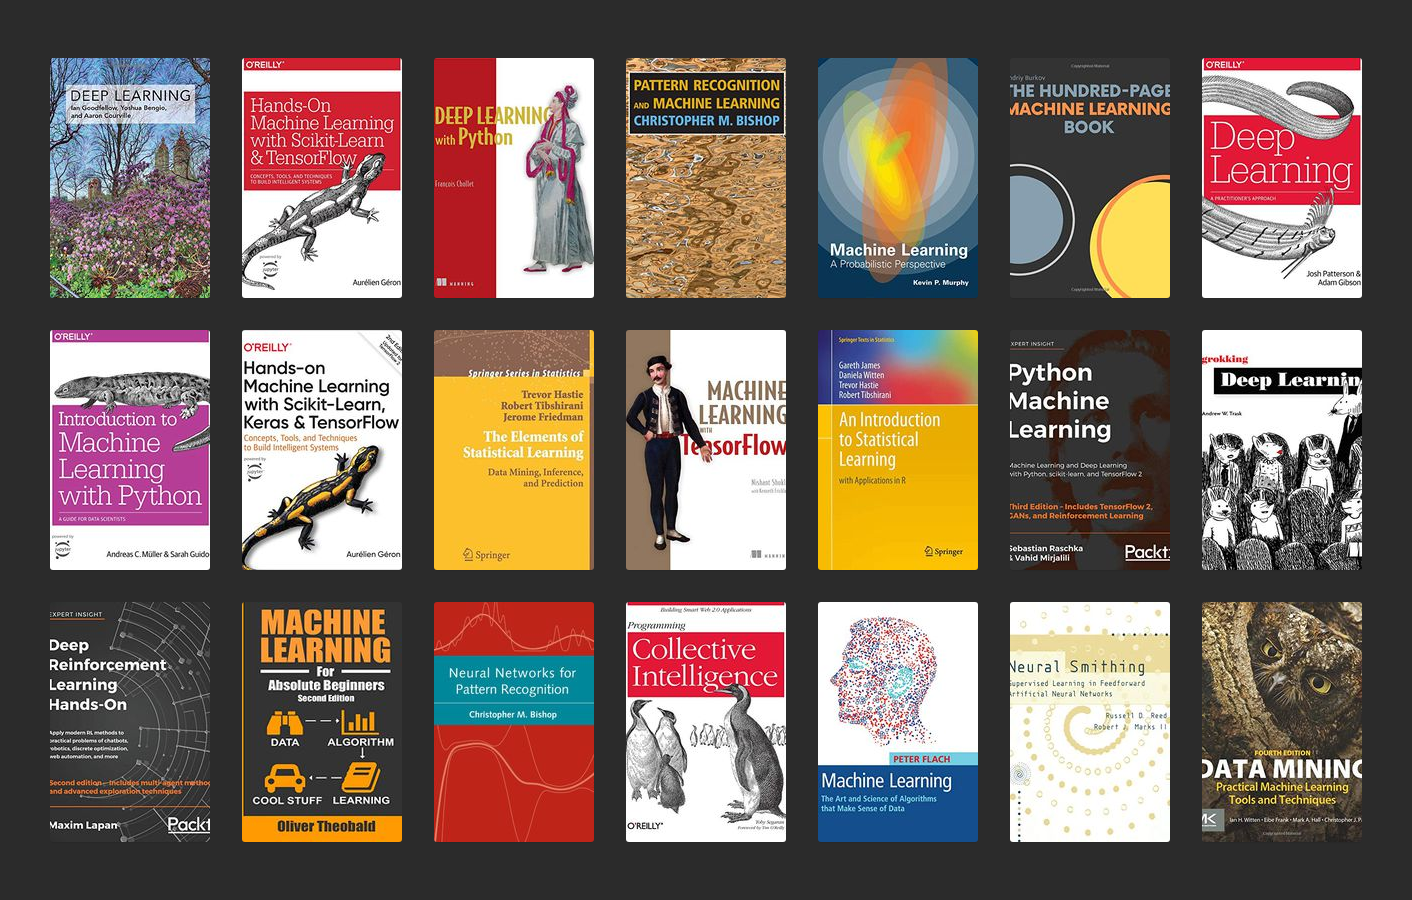 How To Read 43 Machine Learning Books in a Year